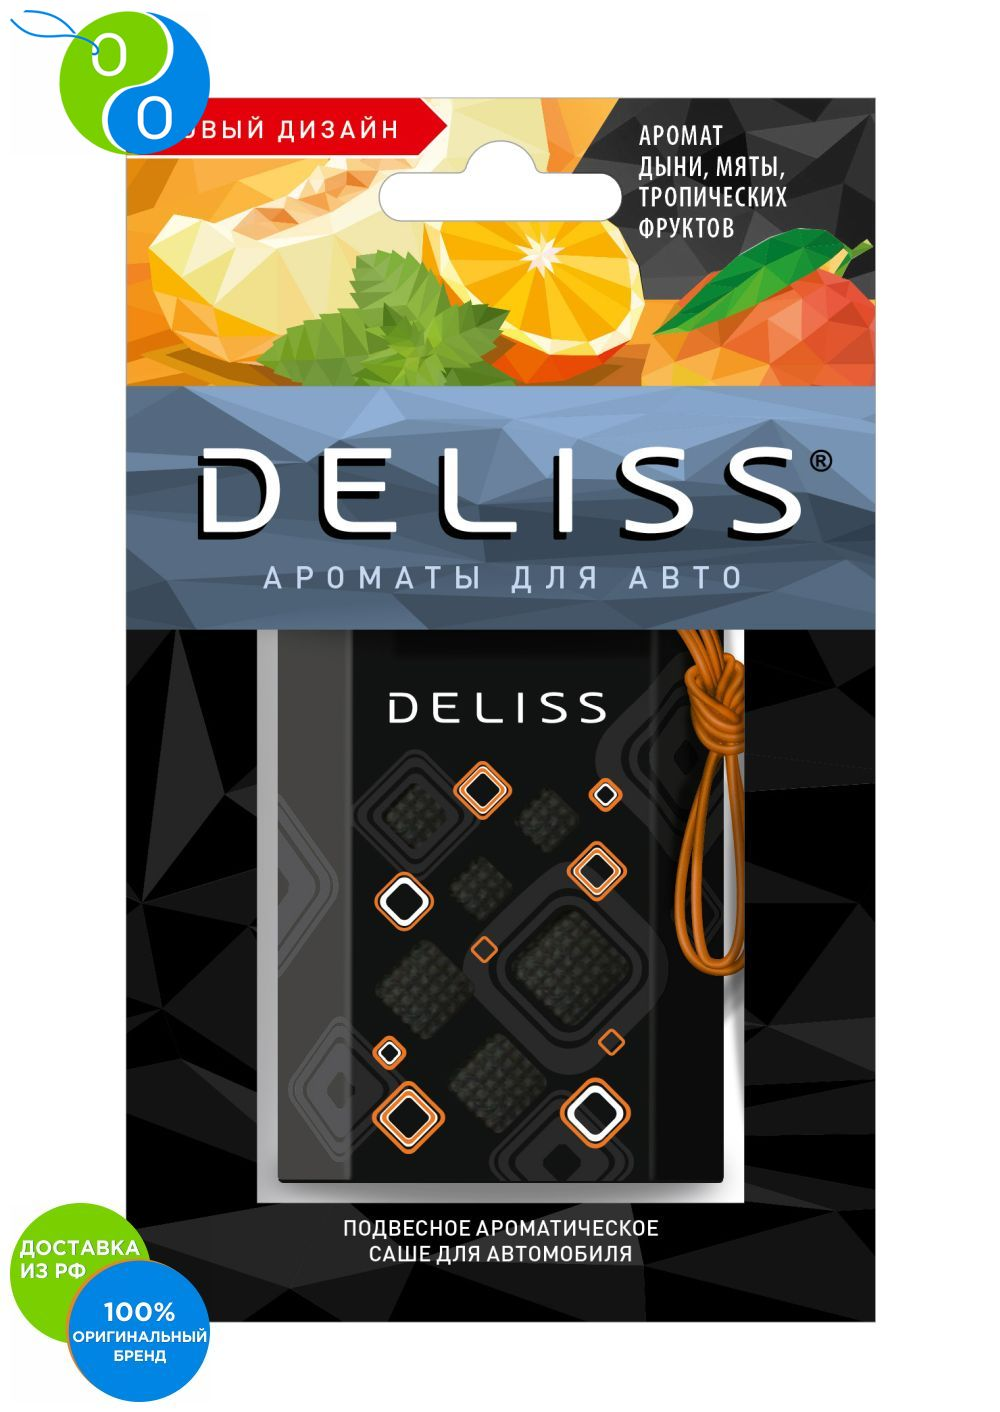 DELISS Suspended aromatic sachets car for Joy,delis, deliss, dilis, flavor, in a machine Delis, Deliss, diliss, herringbone to machine smell in the car, the car sachet